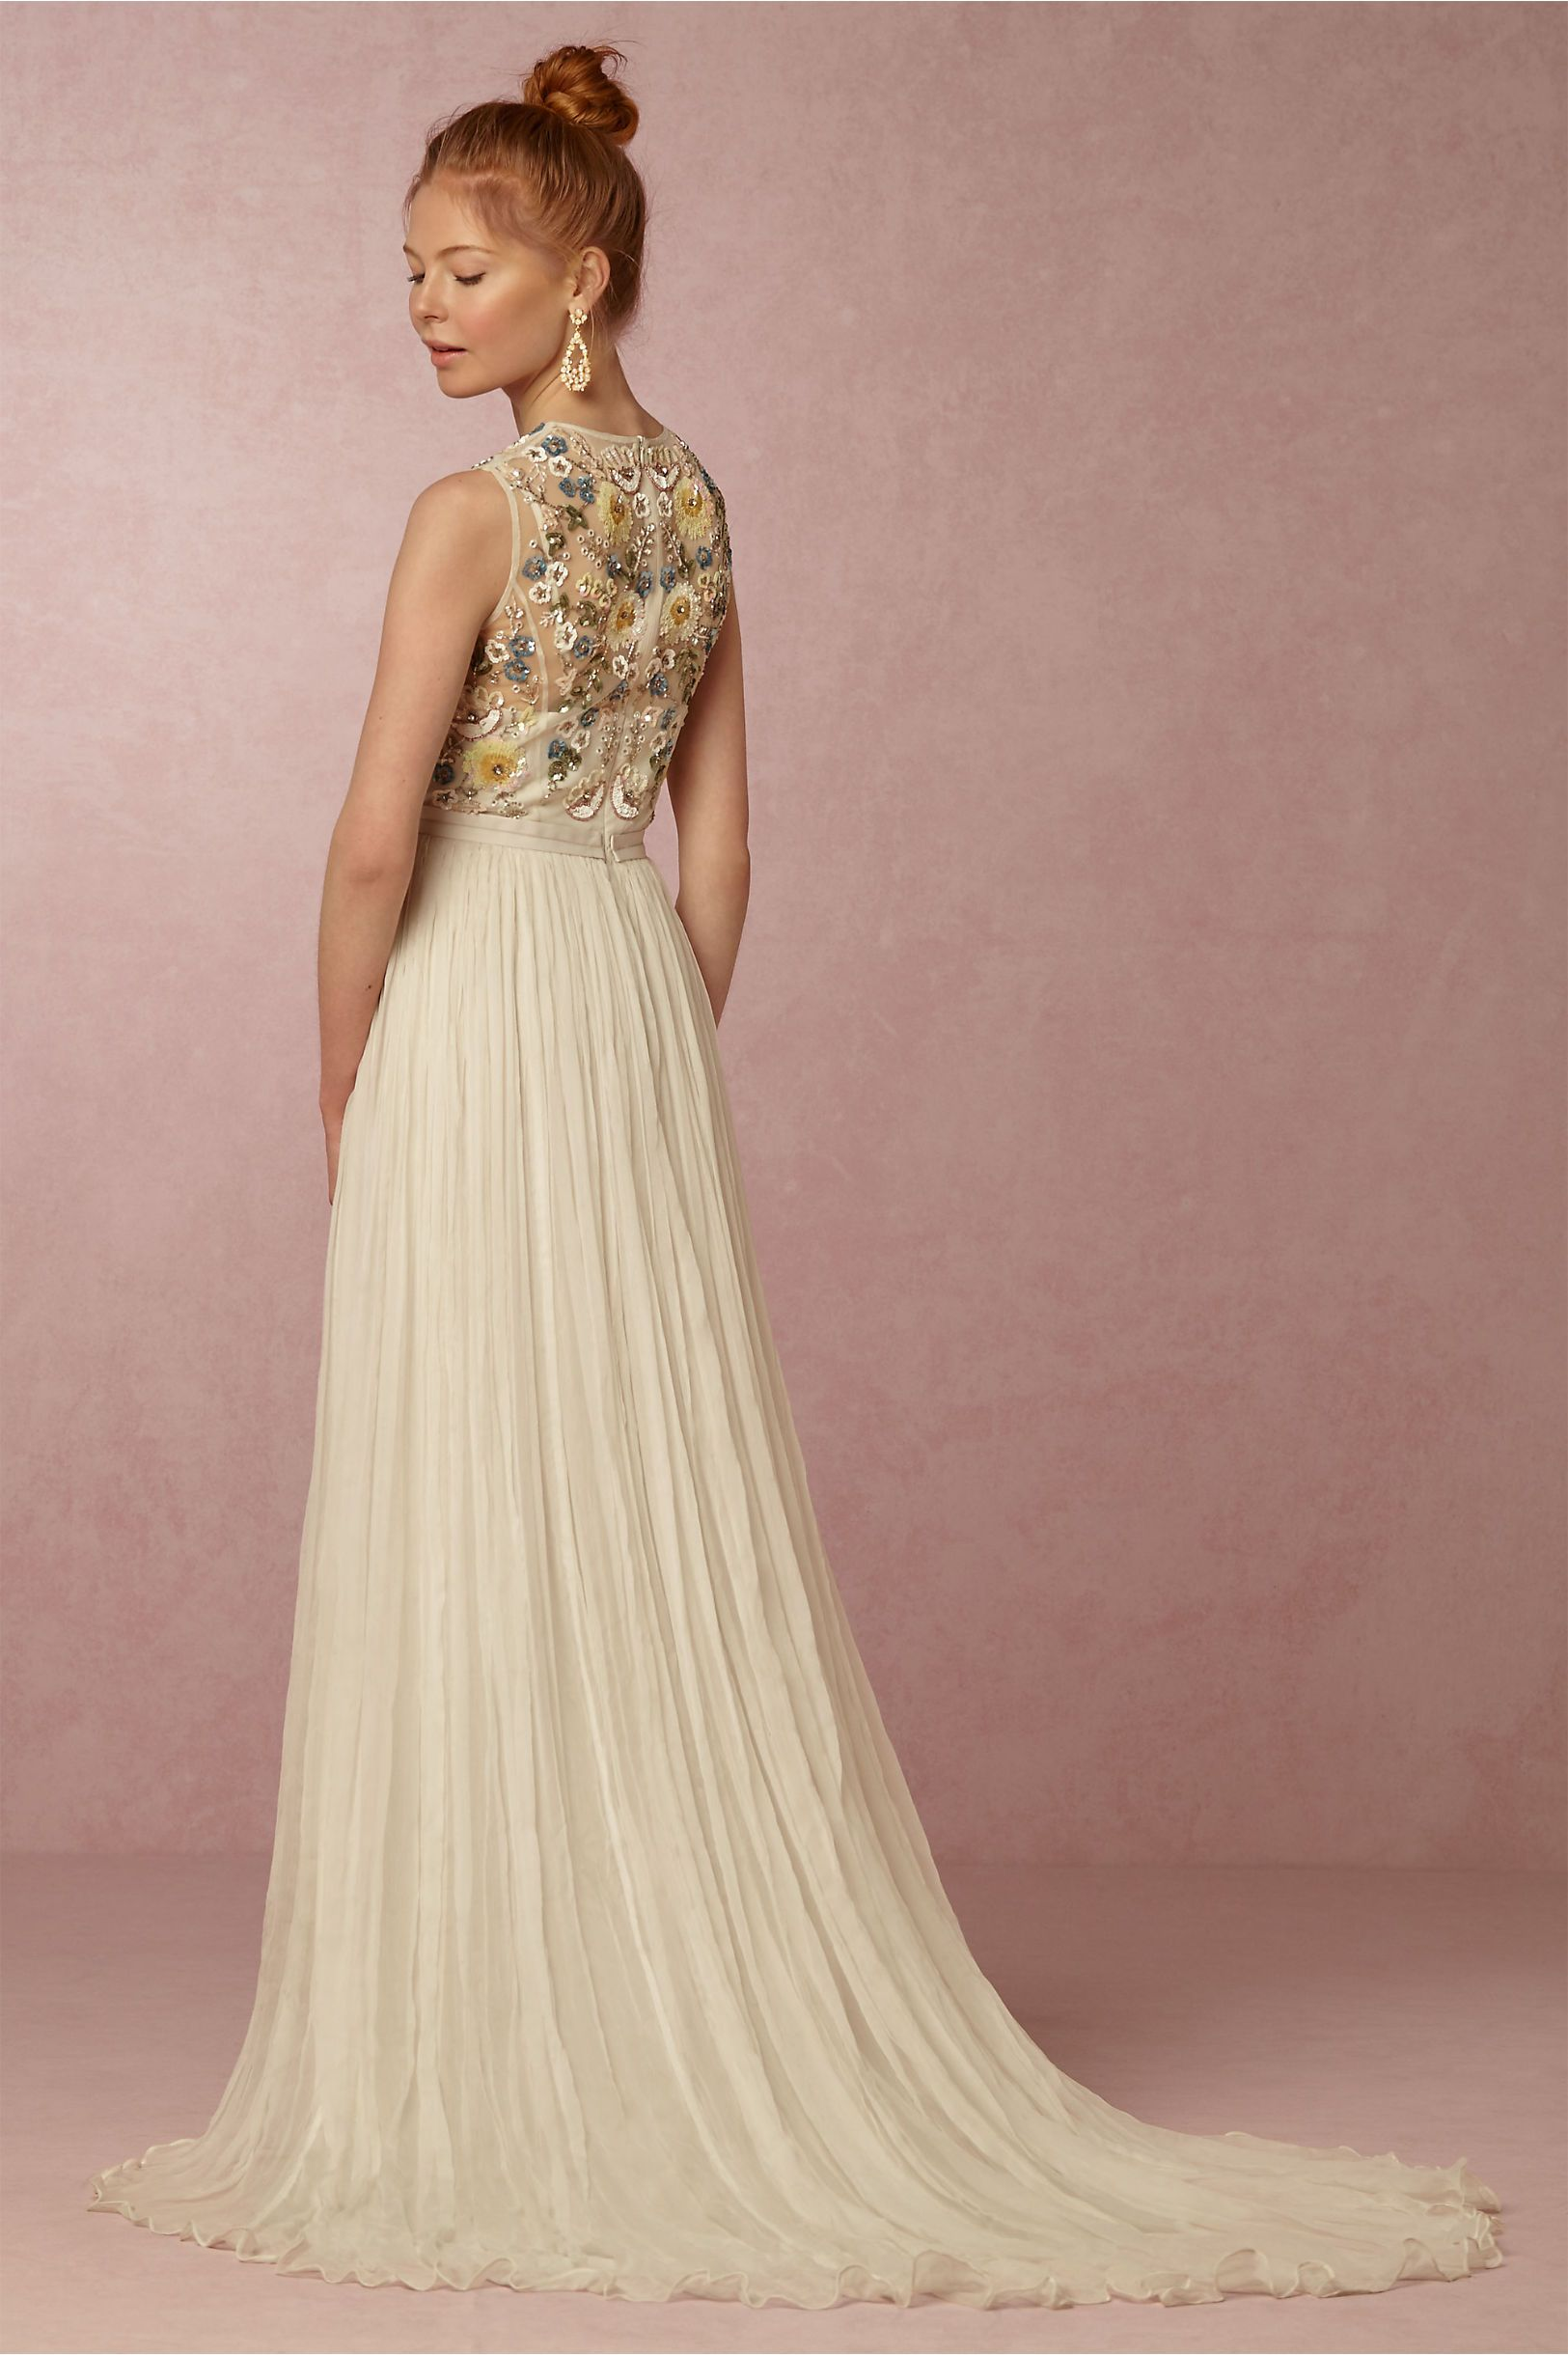 Paulette Dress From Bhldn A Touch Of Whimsy Pinterest